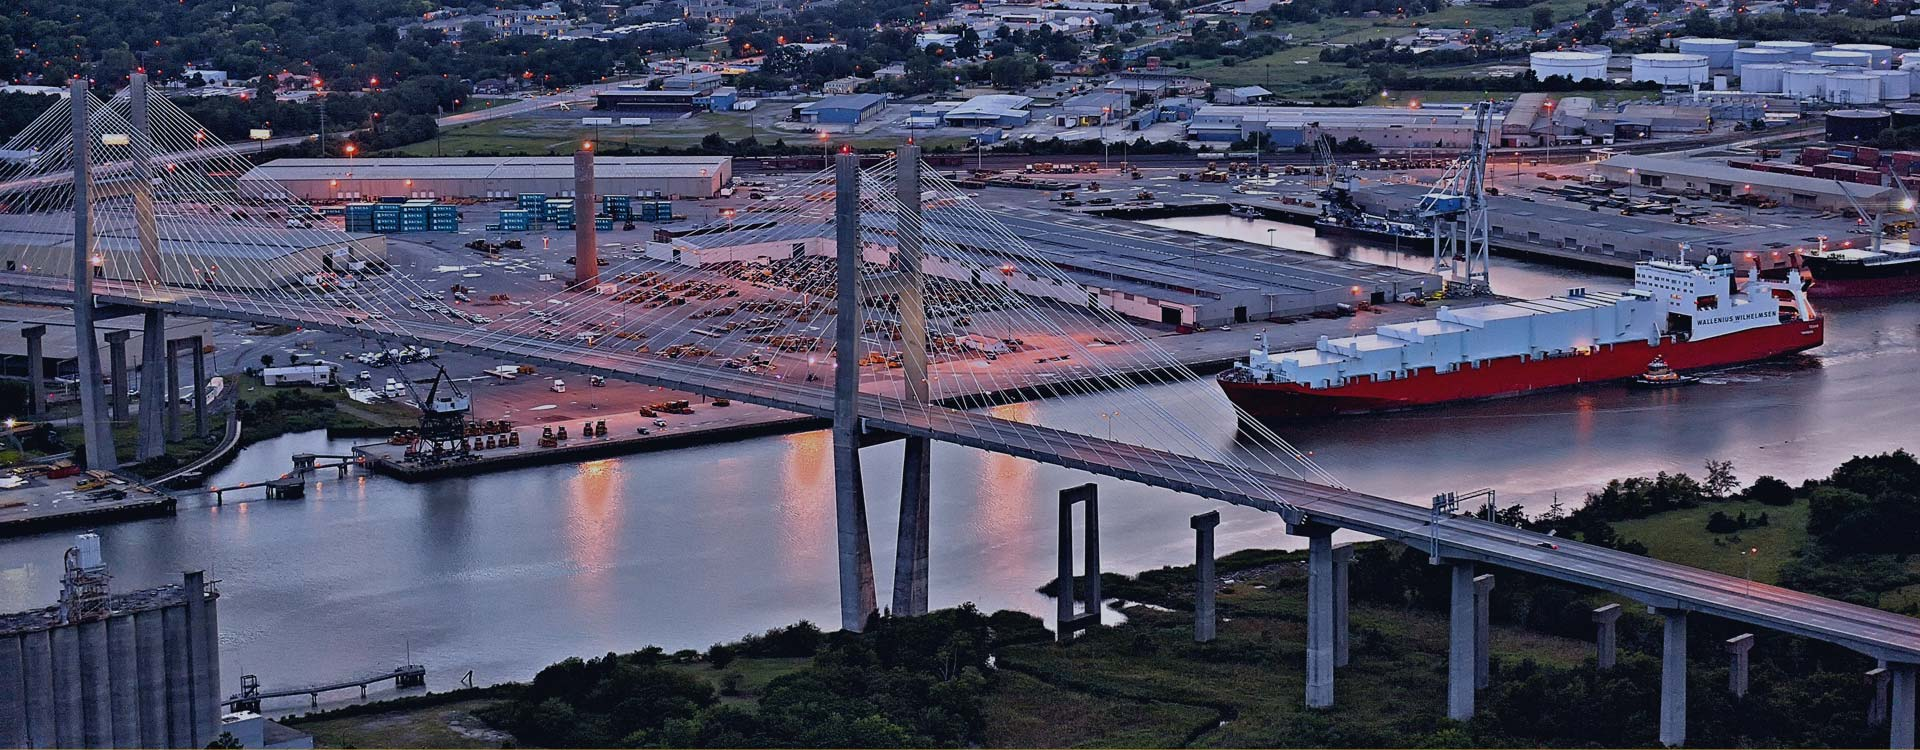 Aerial view of Talmadge Bridge provided by Southeast Helicopter